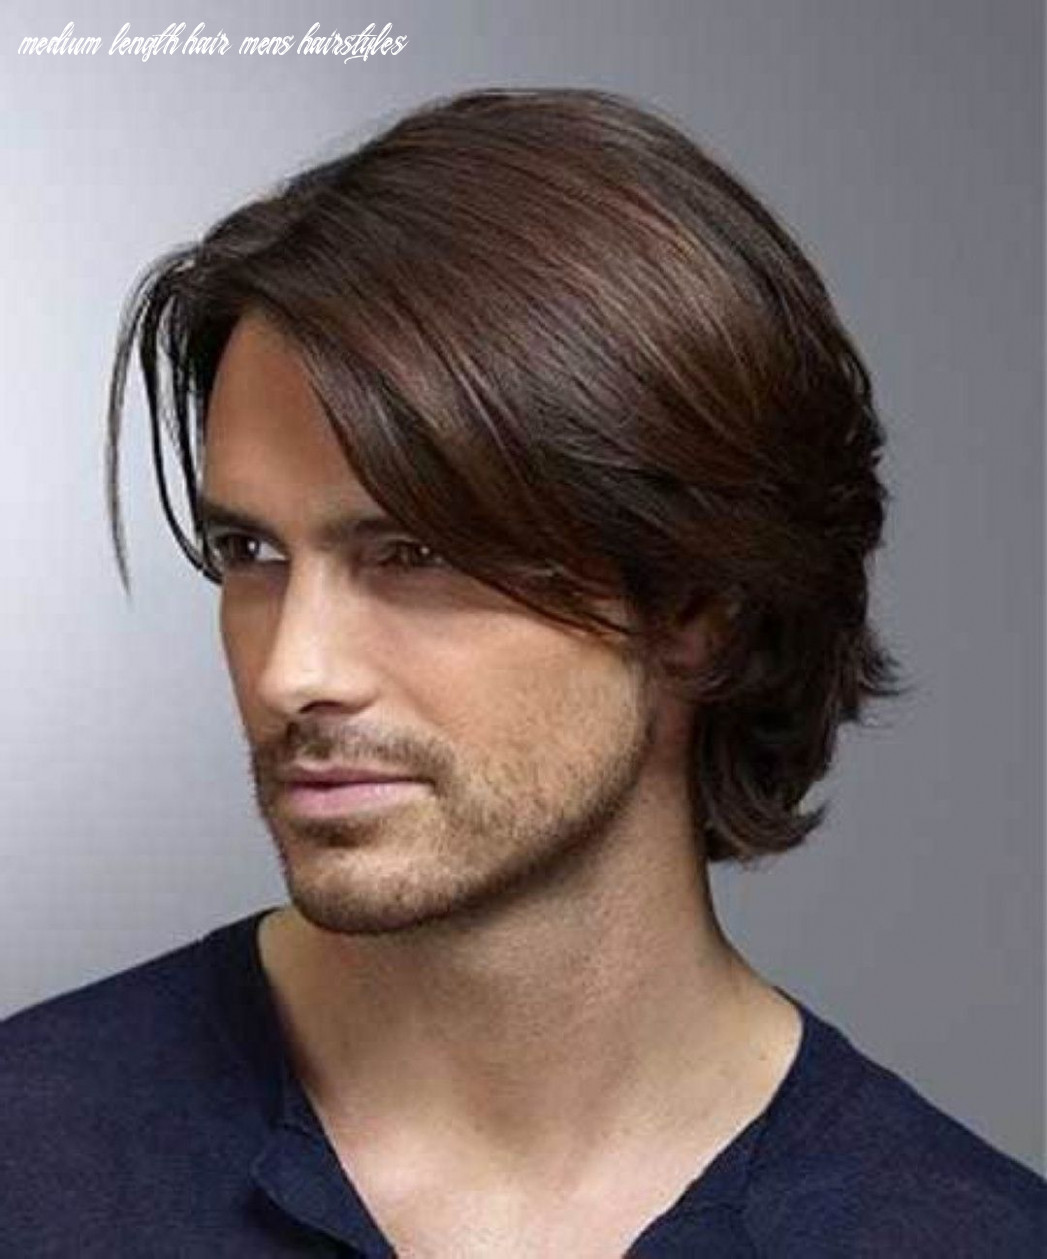 Hairstyle for medium length hair for men 8 images about men